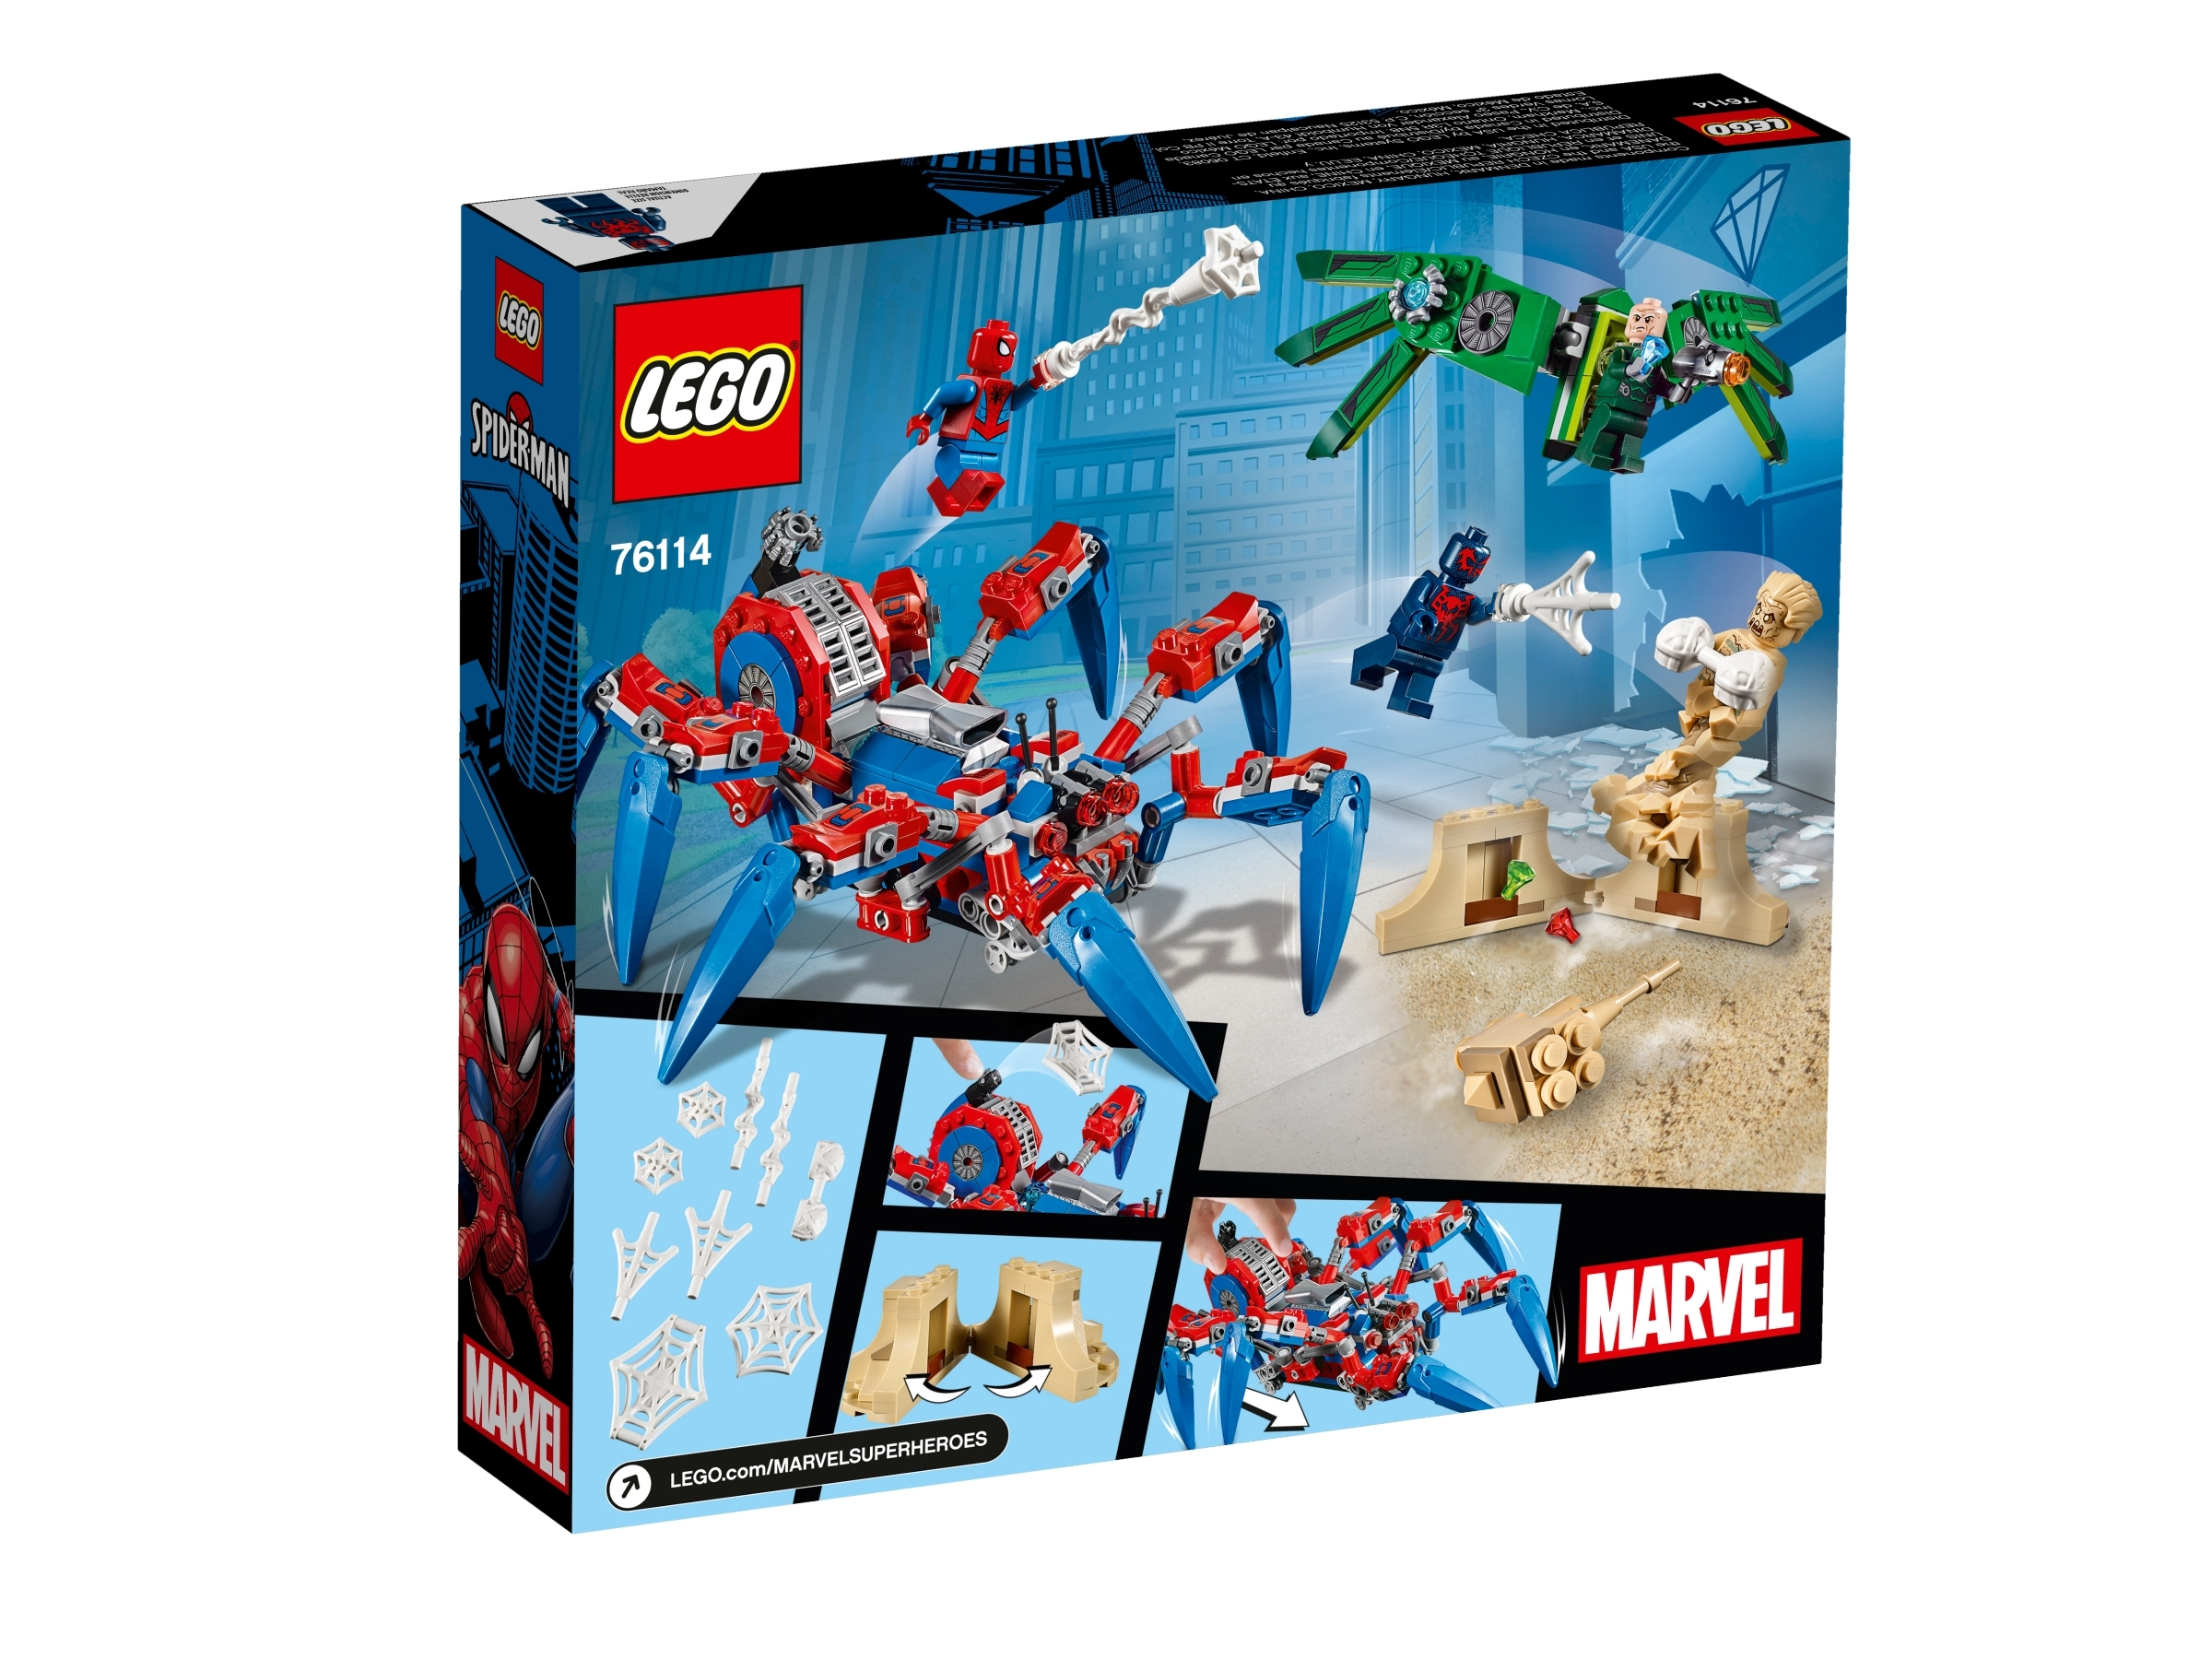 LEGO 76114 Marvel Spider-man's Spider Crawler 418 Pieces With 4 Minifigures